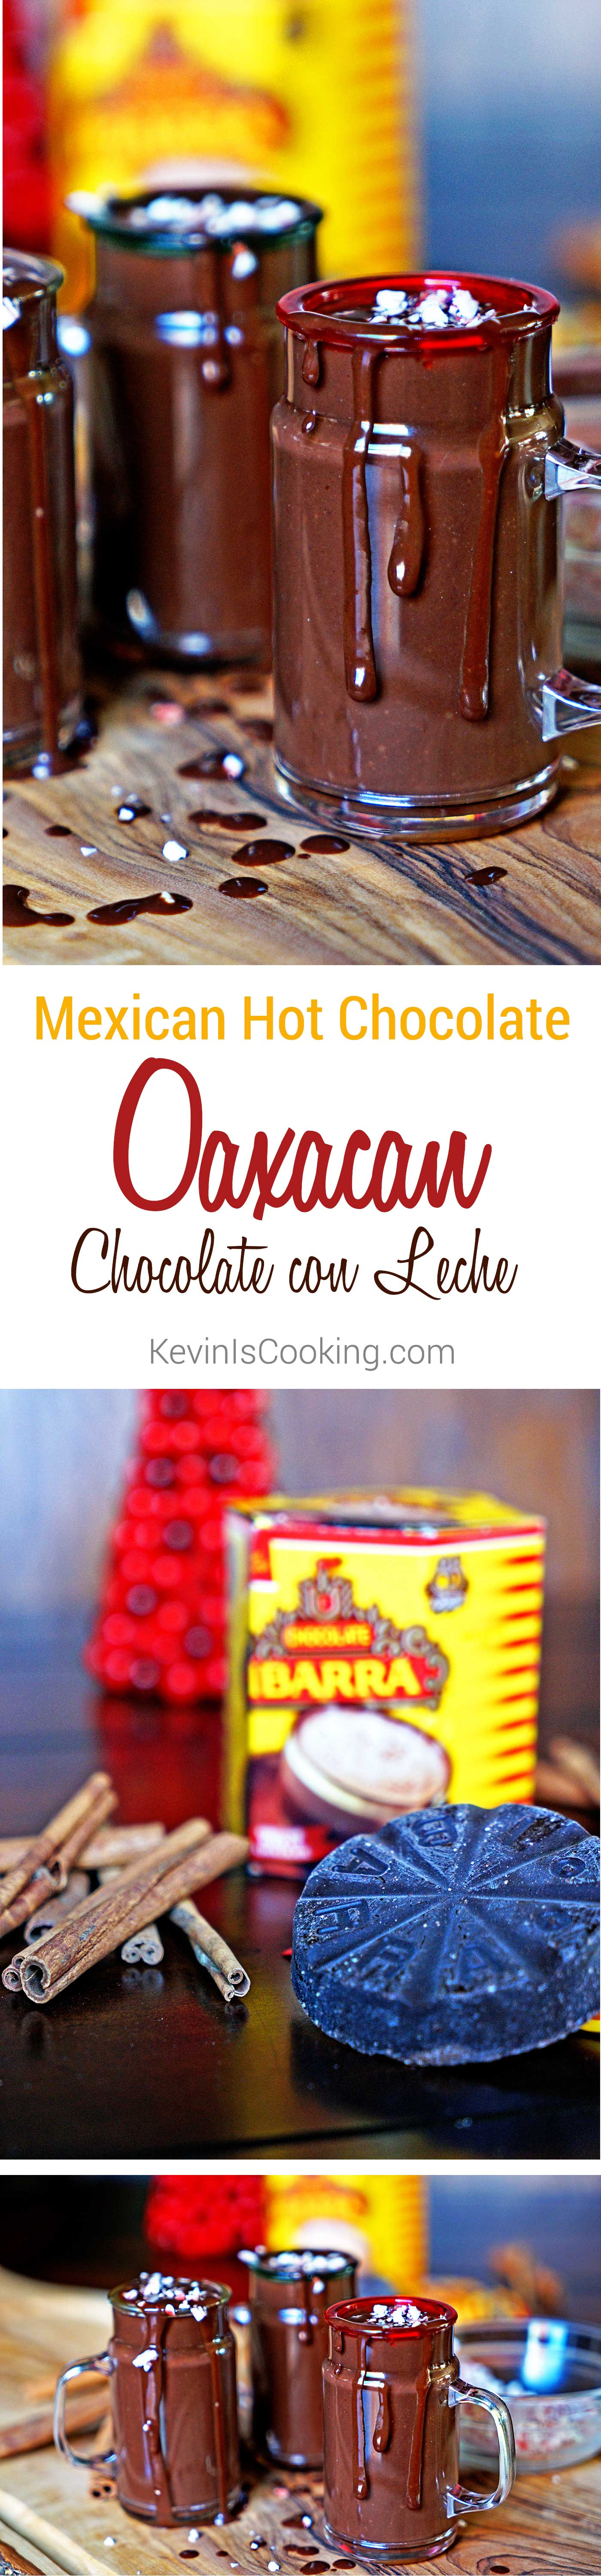 Mexican Hot Chocolate – Oaxacan Chocolate con Leche. www.keviniscooking.com